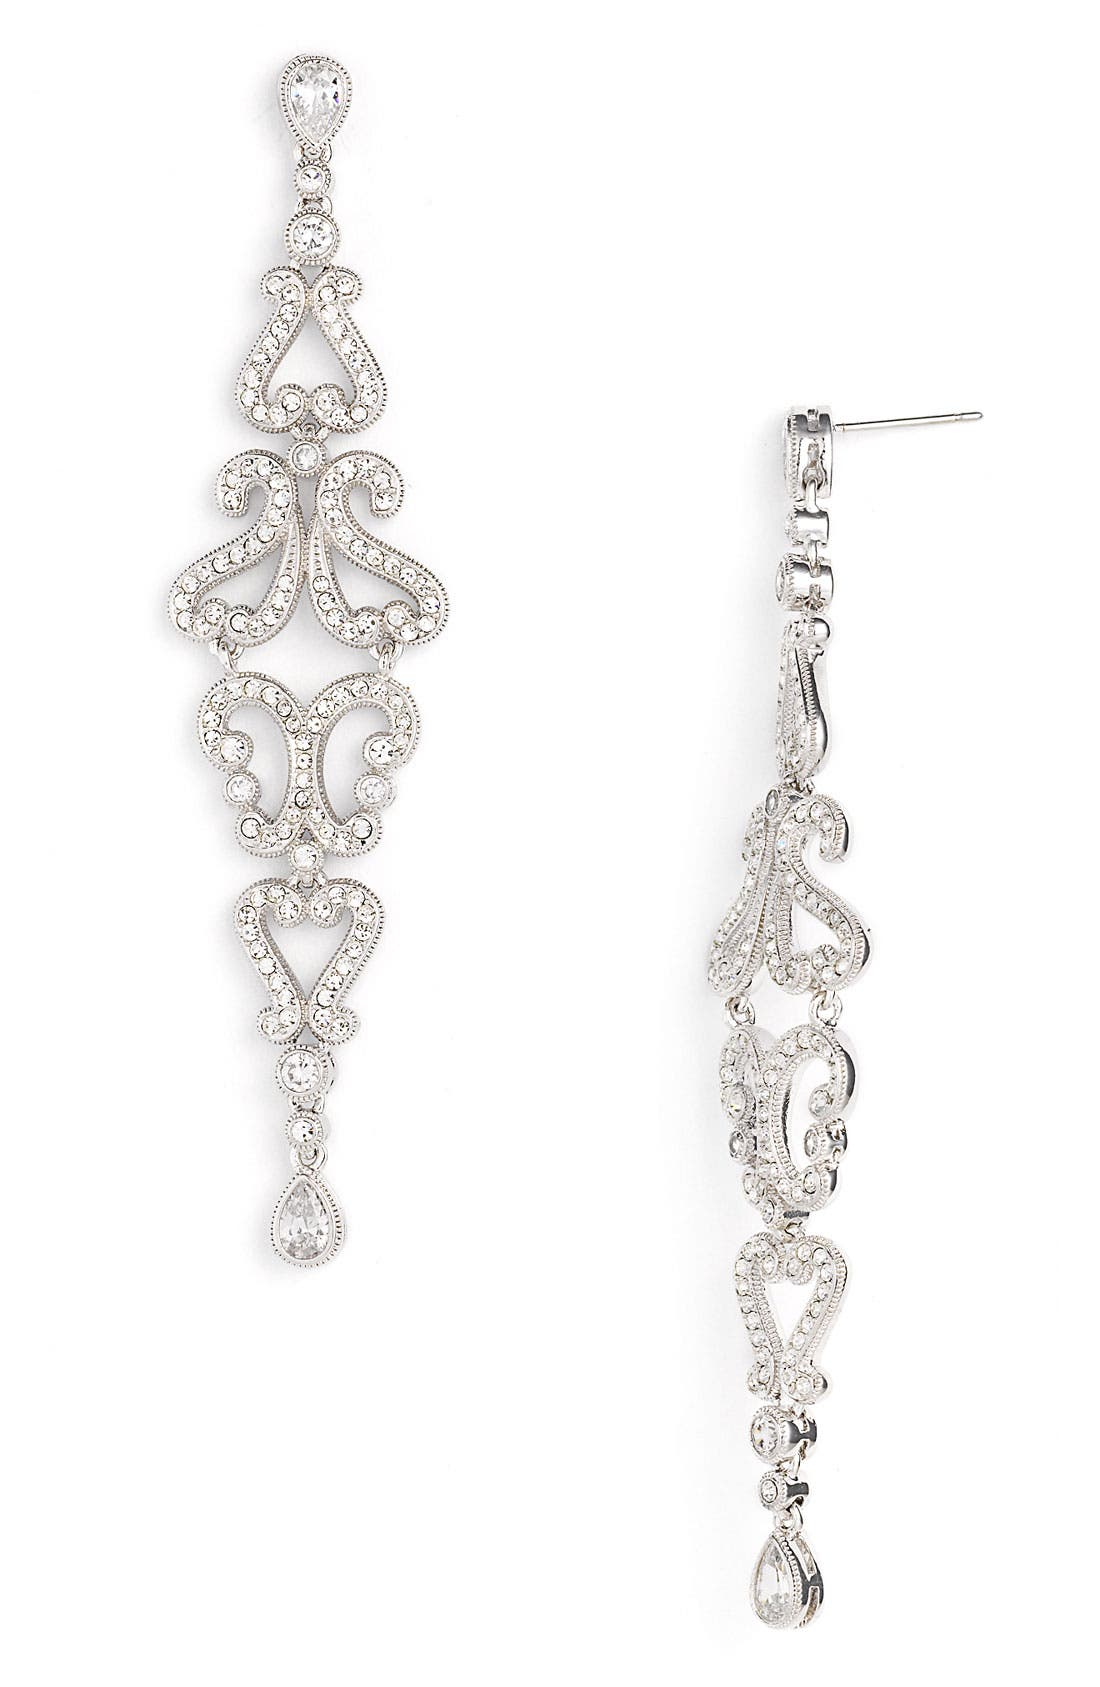 Alternate Image 1 Selected - Nadri Linear Filigree Earrings (Nordstrom Exclusive)